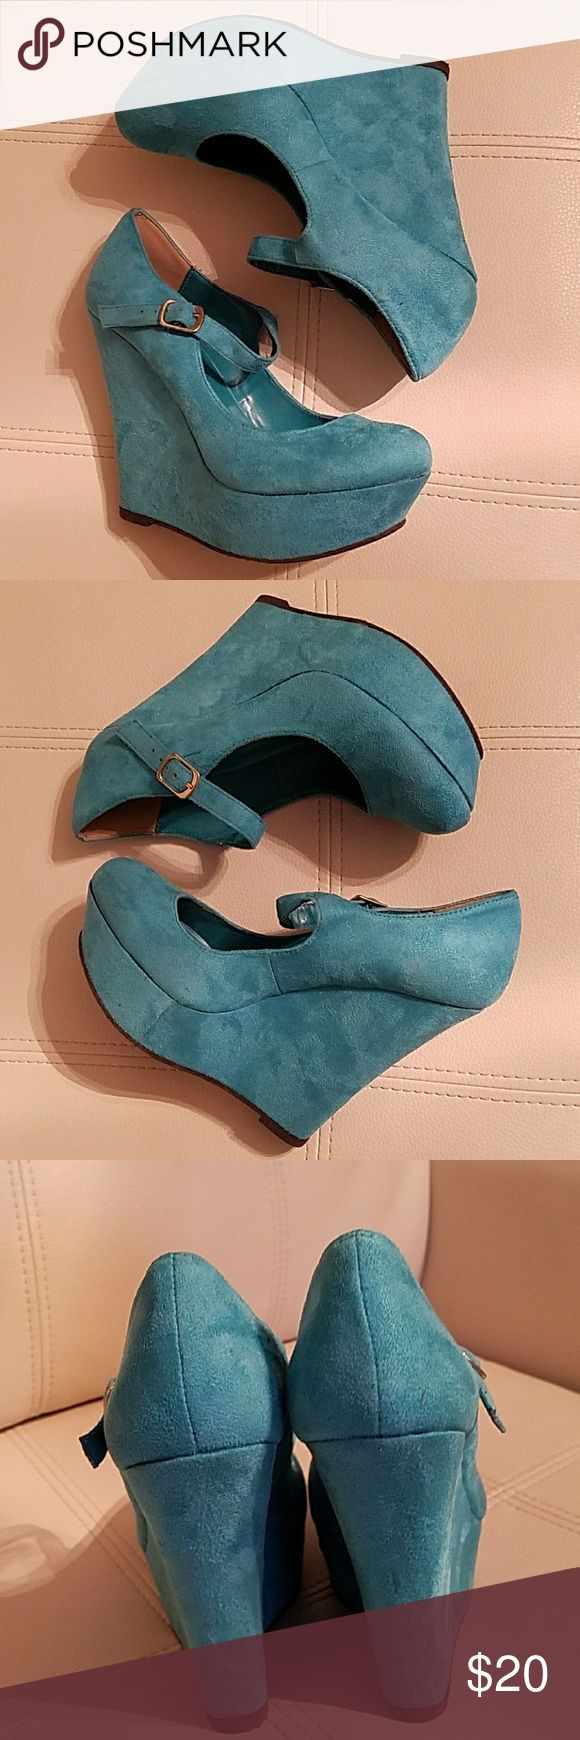 TEAL Wedges Suede with buckle, closed toe, with 5 inch heel, Rock these shoes without worrying about that pedicure that you need :) D Shoes Wedges